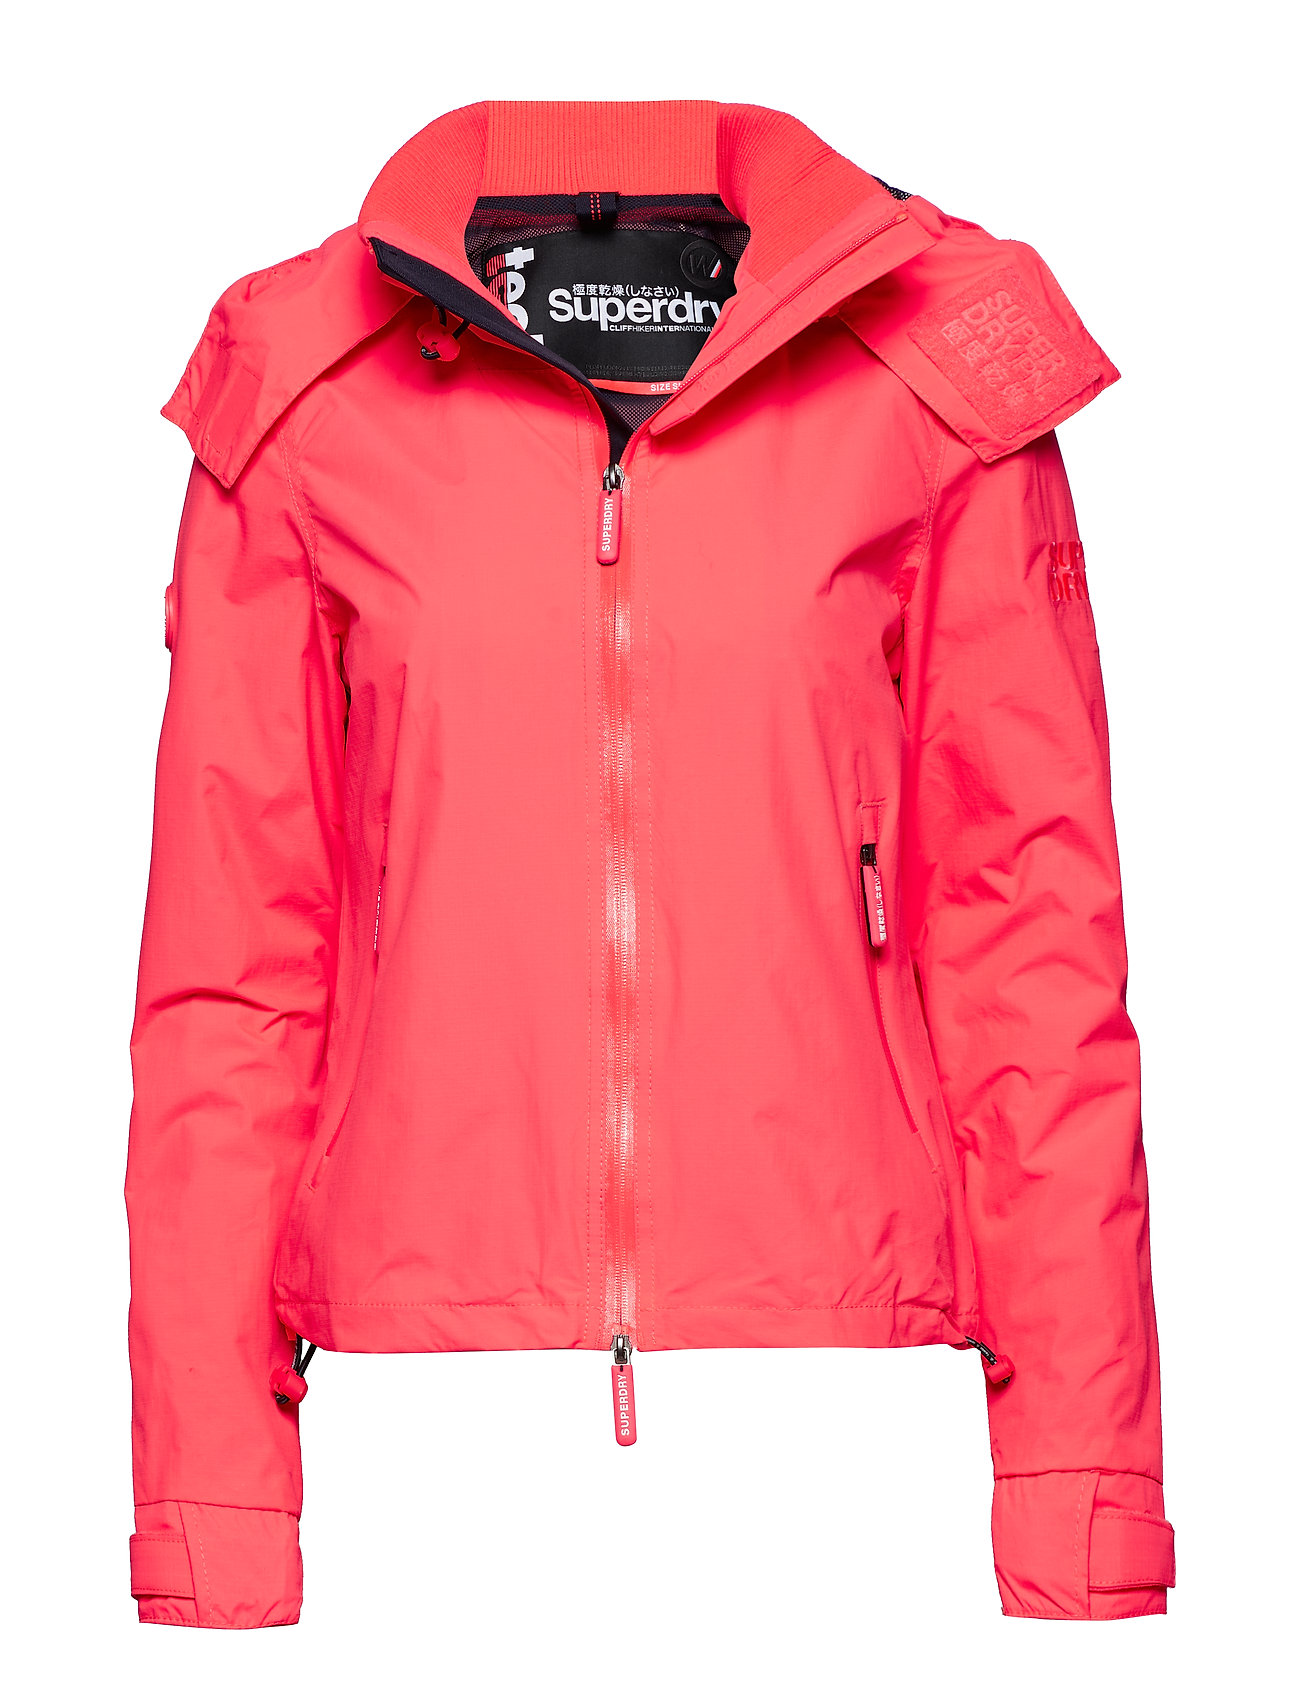 Nbcoral Hiker deep Cliff MarineSuperdry Hooded Punch tCrshQd